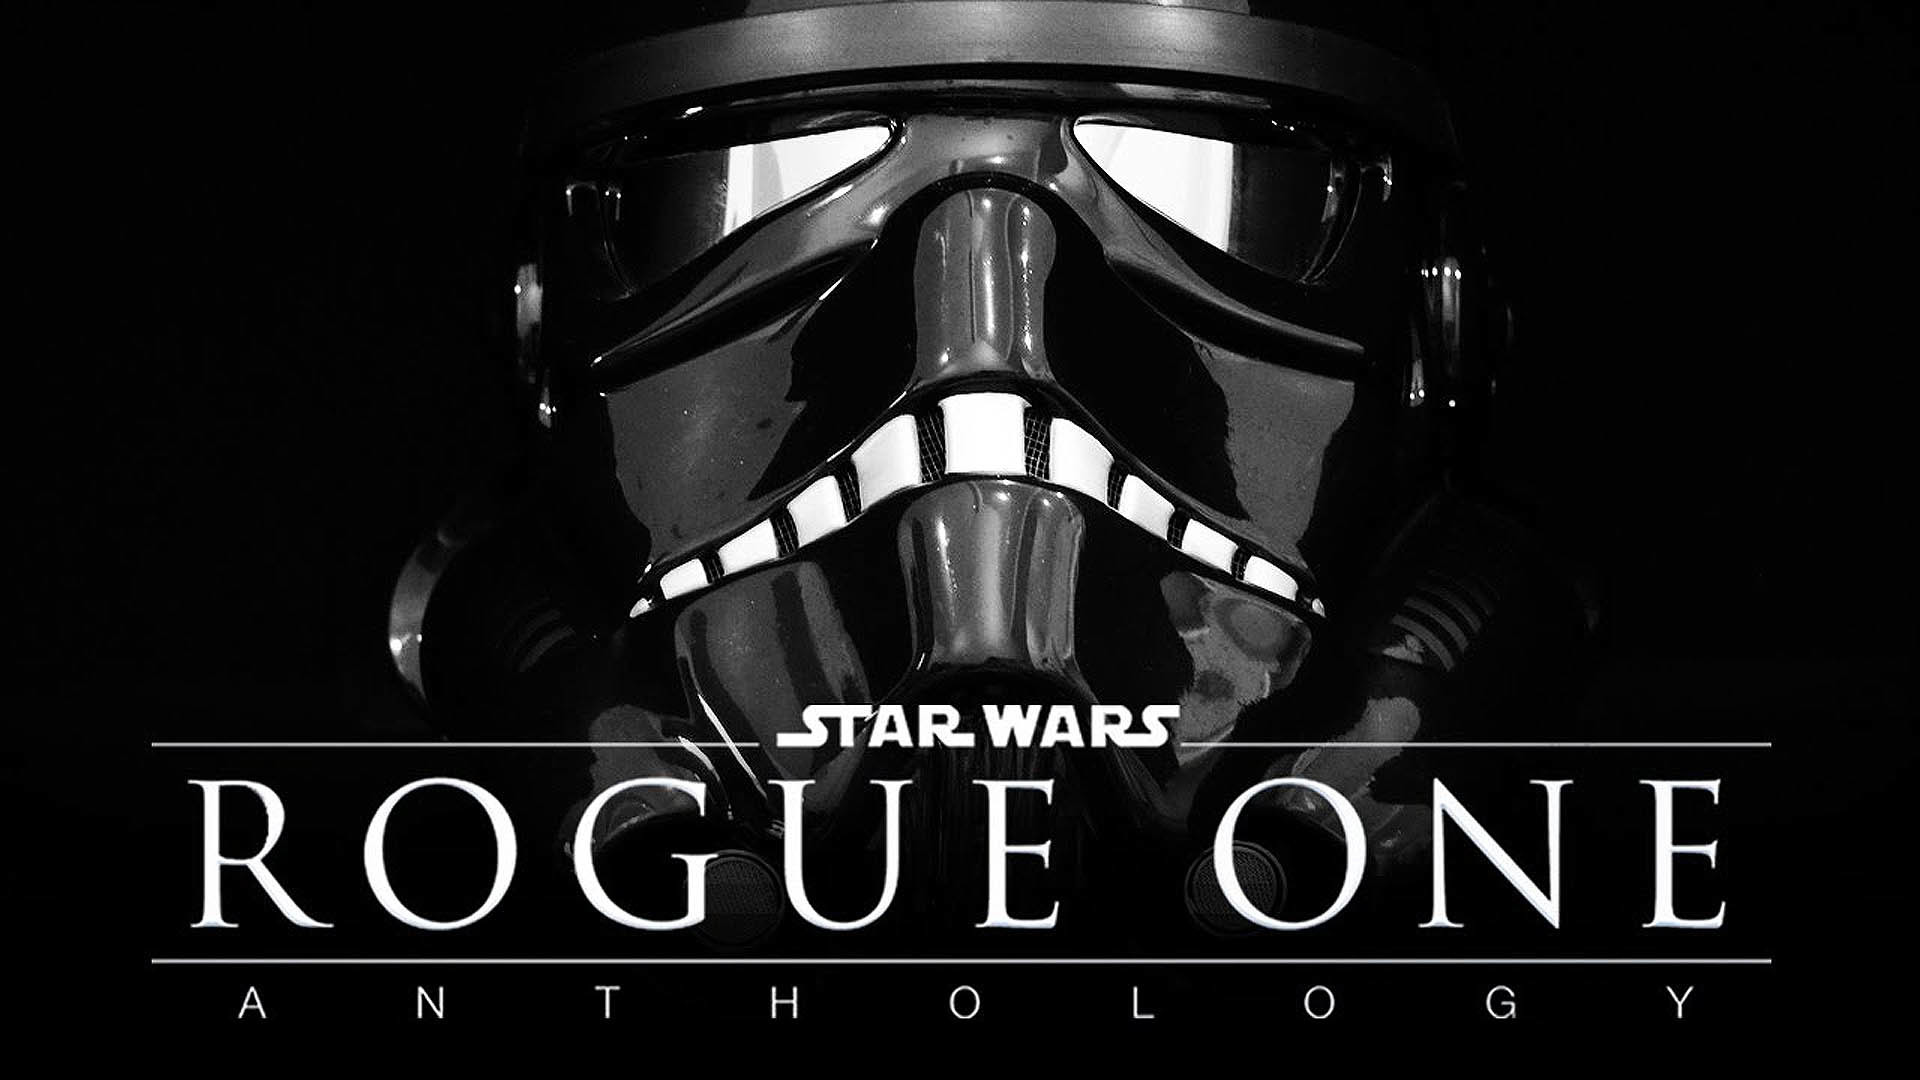 1920x1080 Star Wars Rogue One - Shadow Stormtrooper  wallpaper